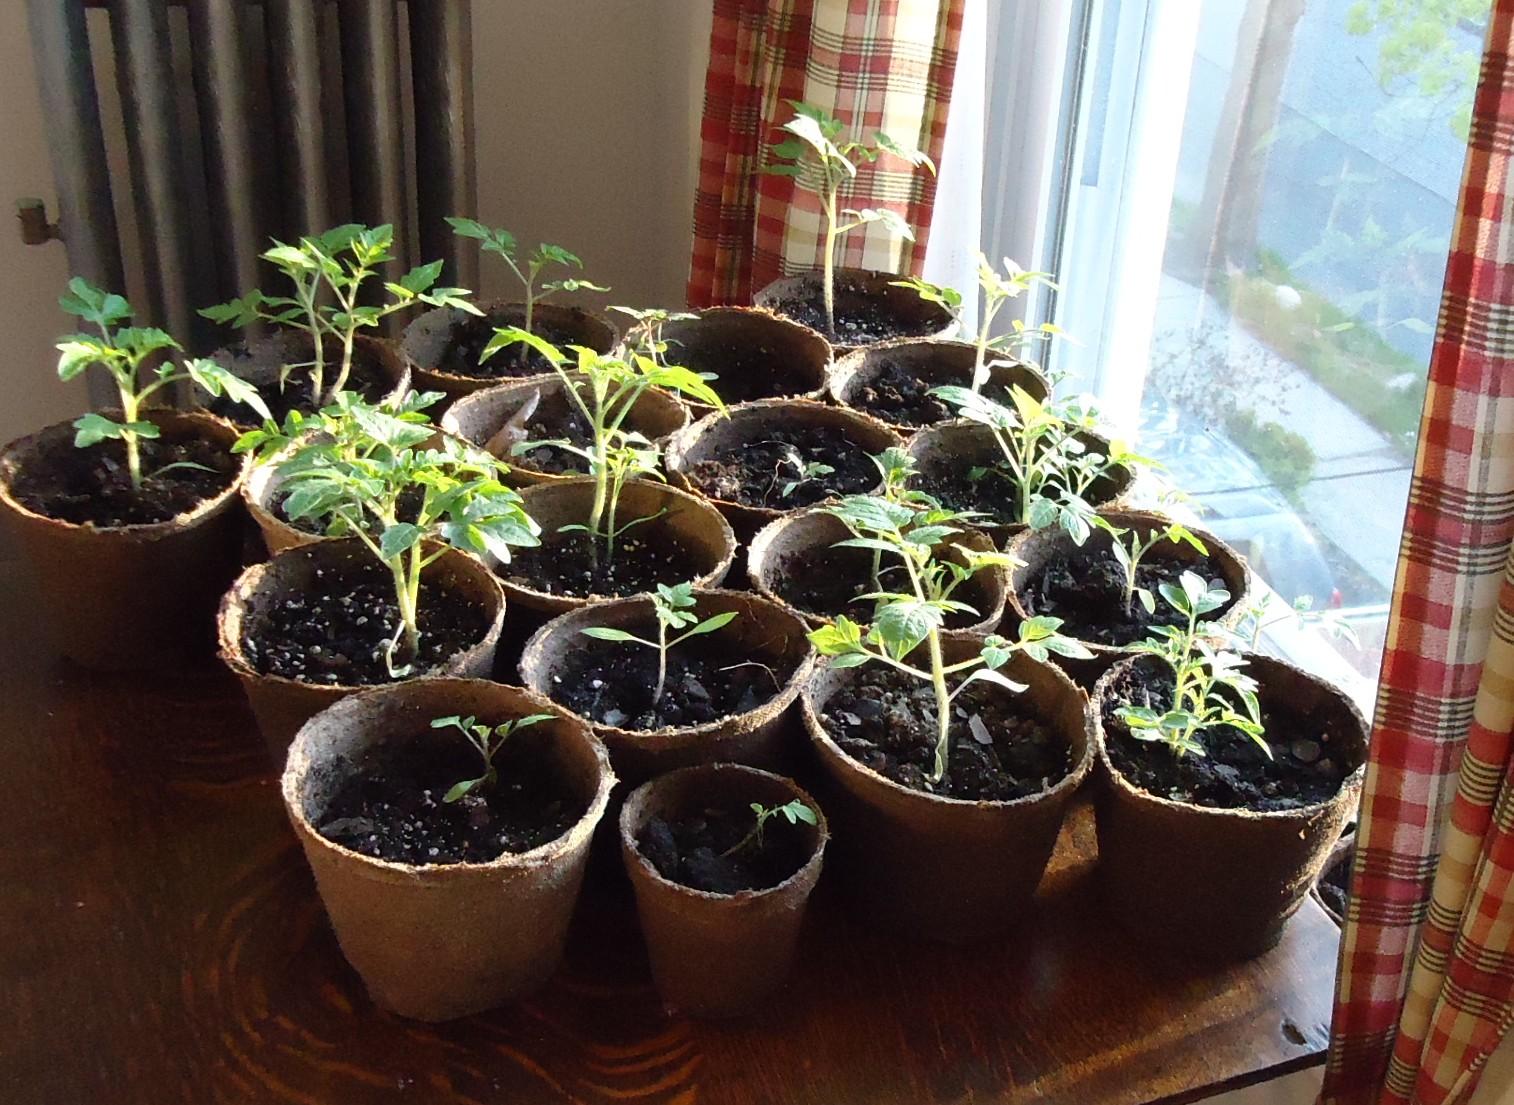 Tomato_plants_grown_from_seeds_near_window